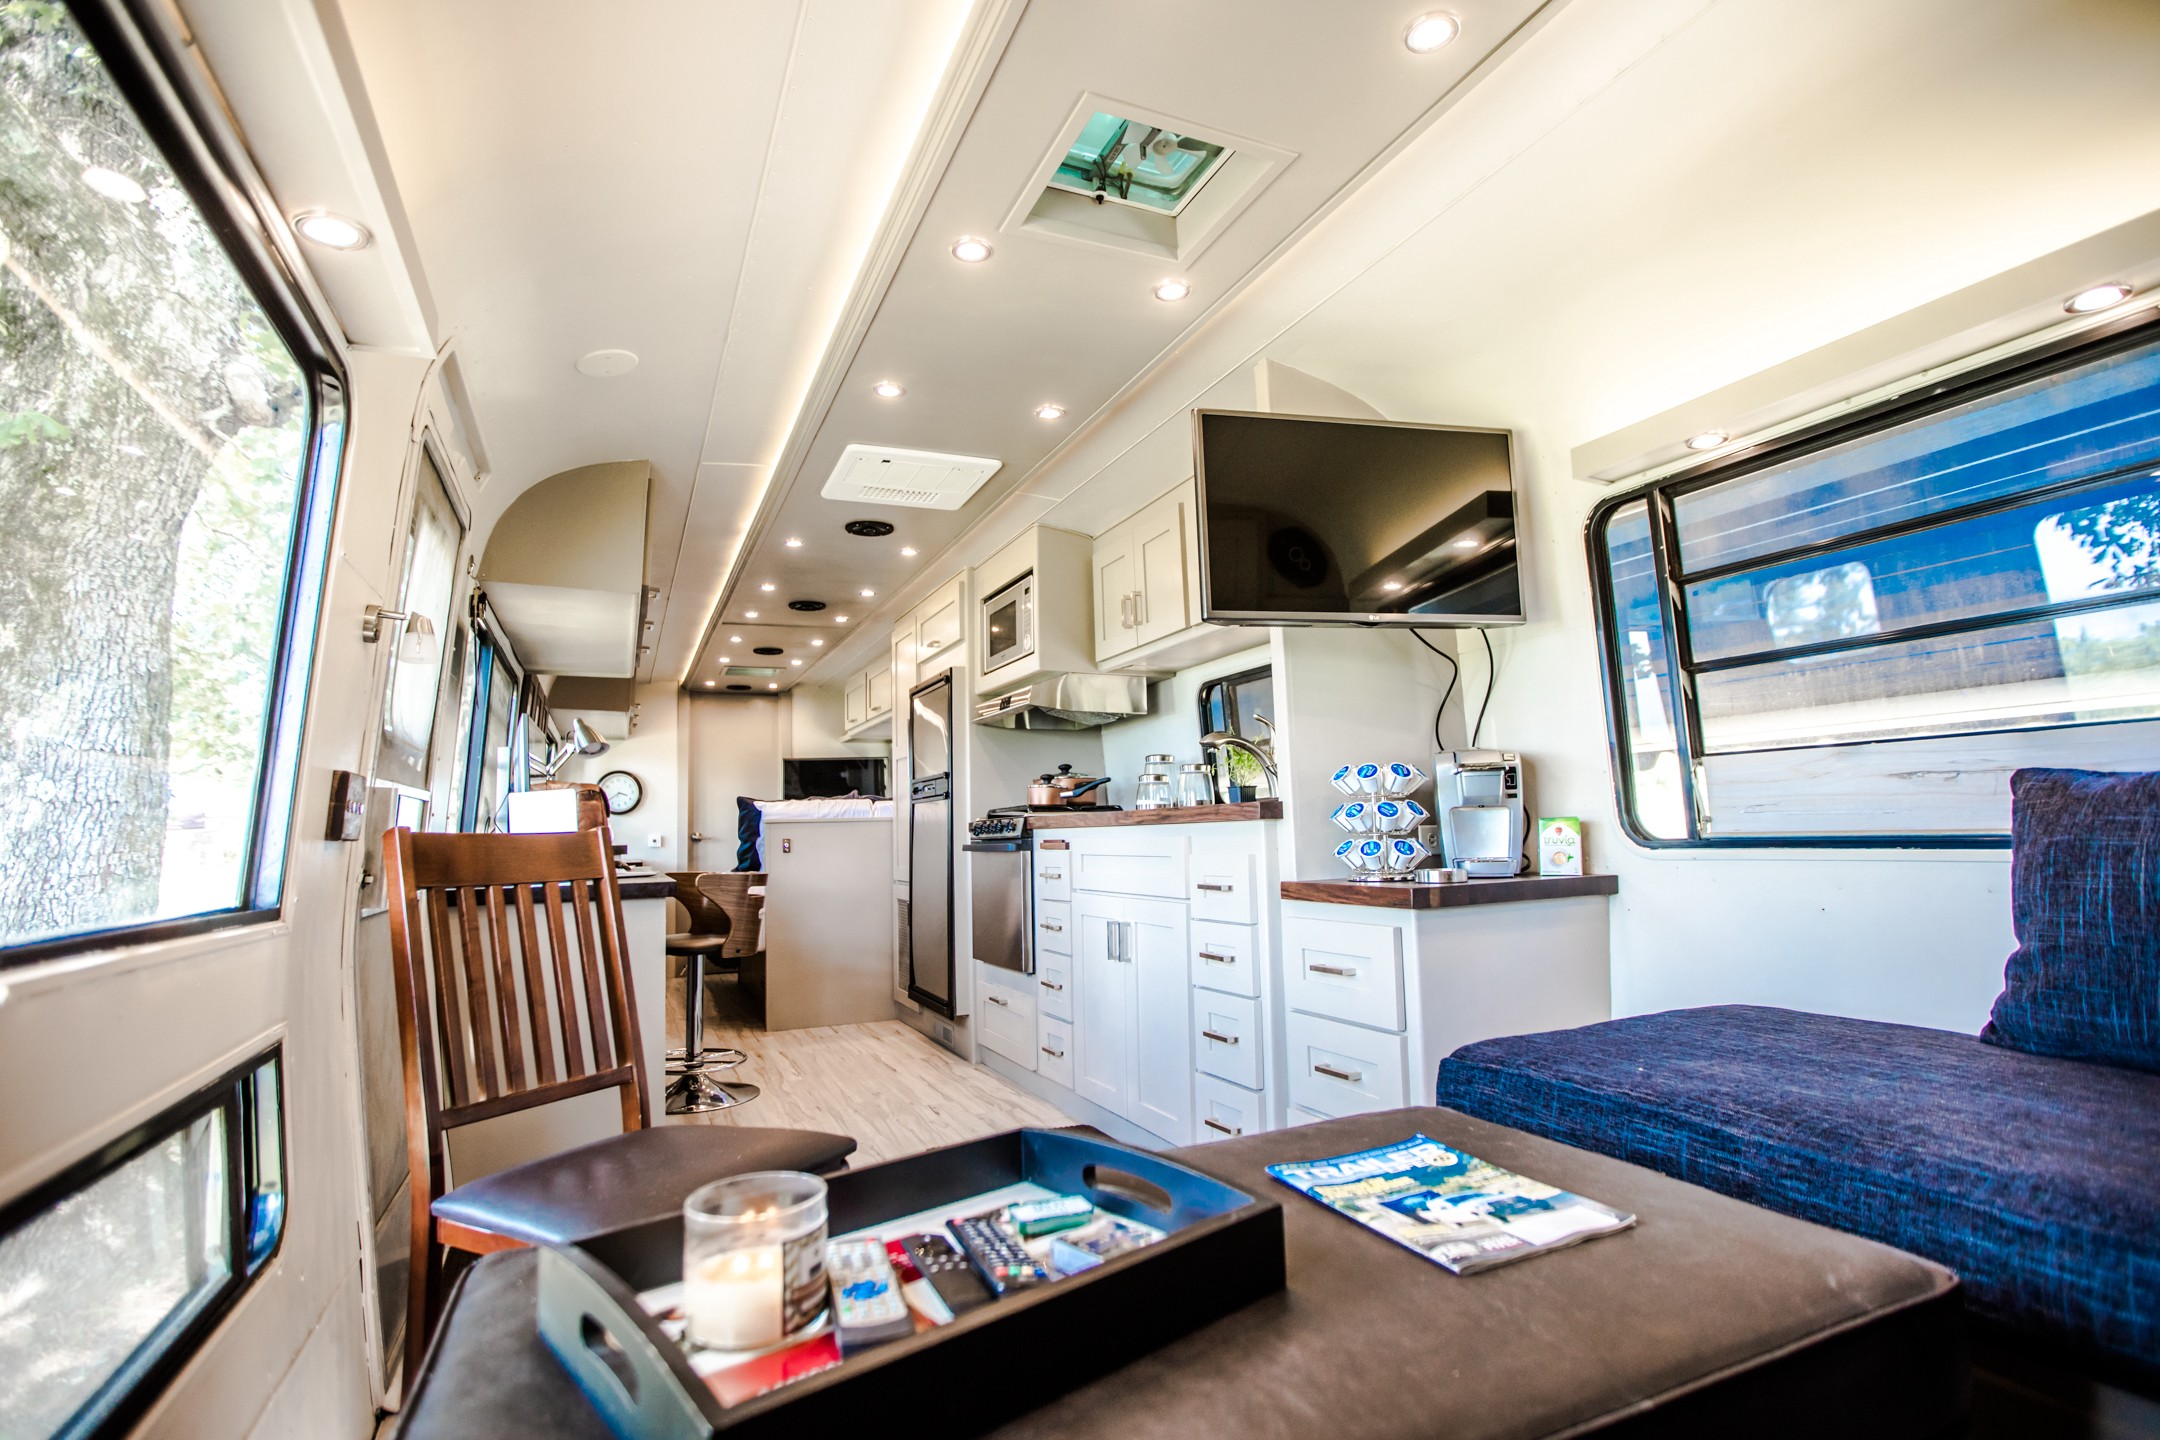 1988 Rv A Filmmaker S Tinyhome Remodel Bailey Eubanks